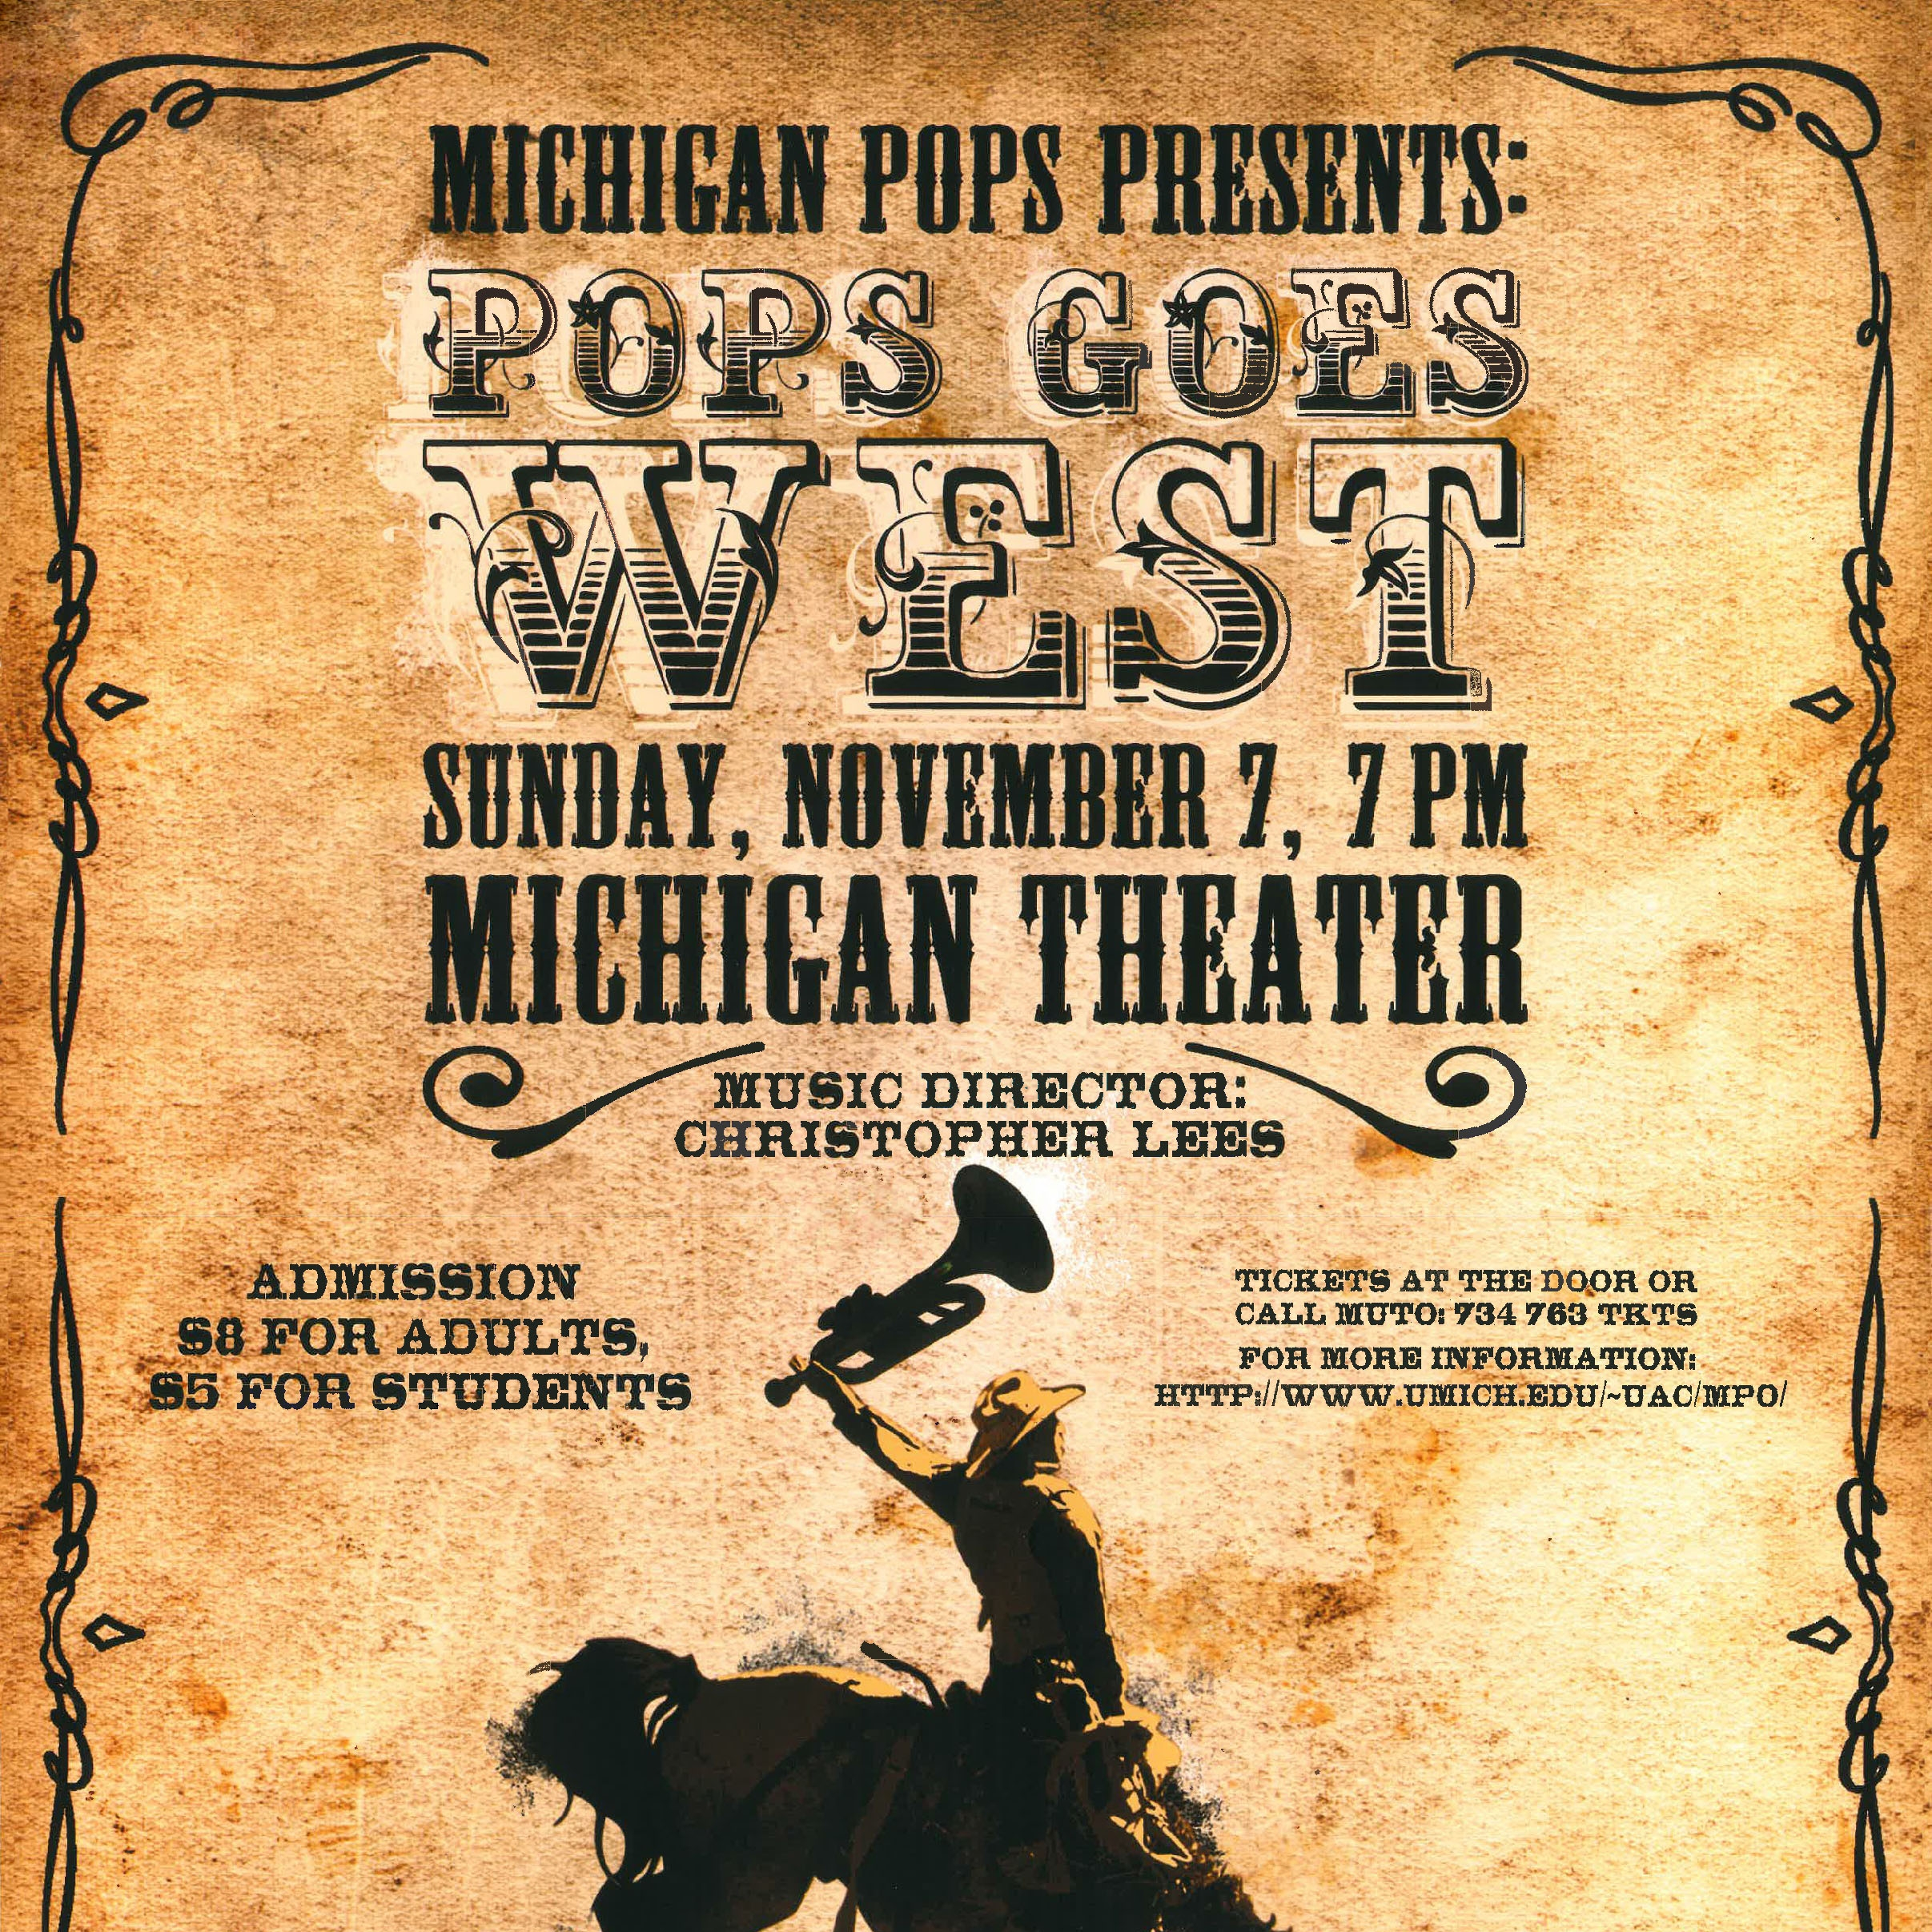 Pops Goes West - Fall 2004